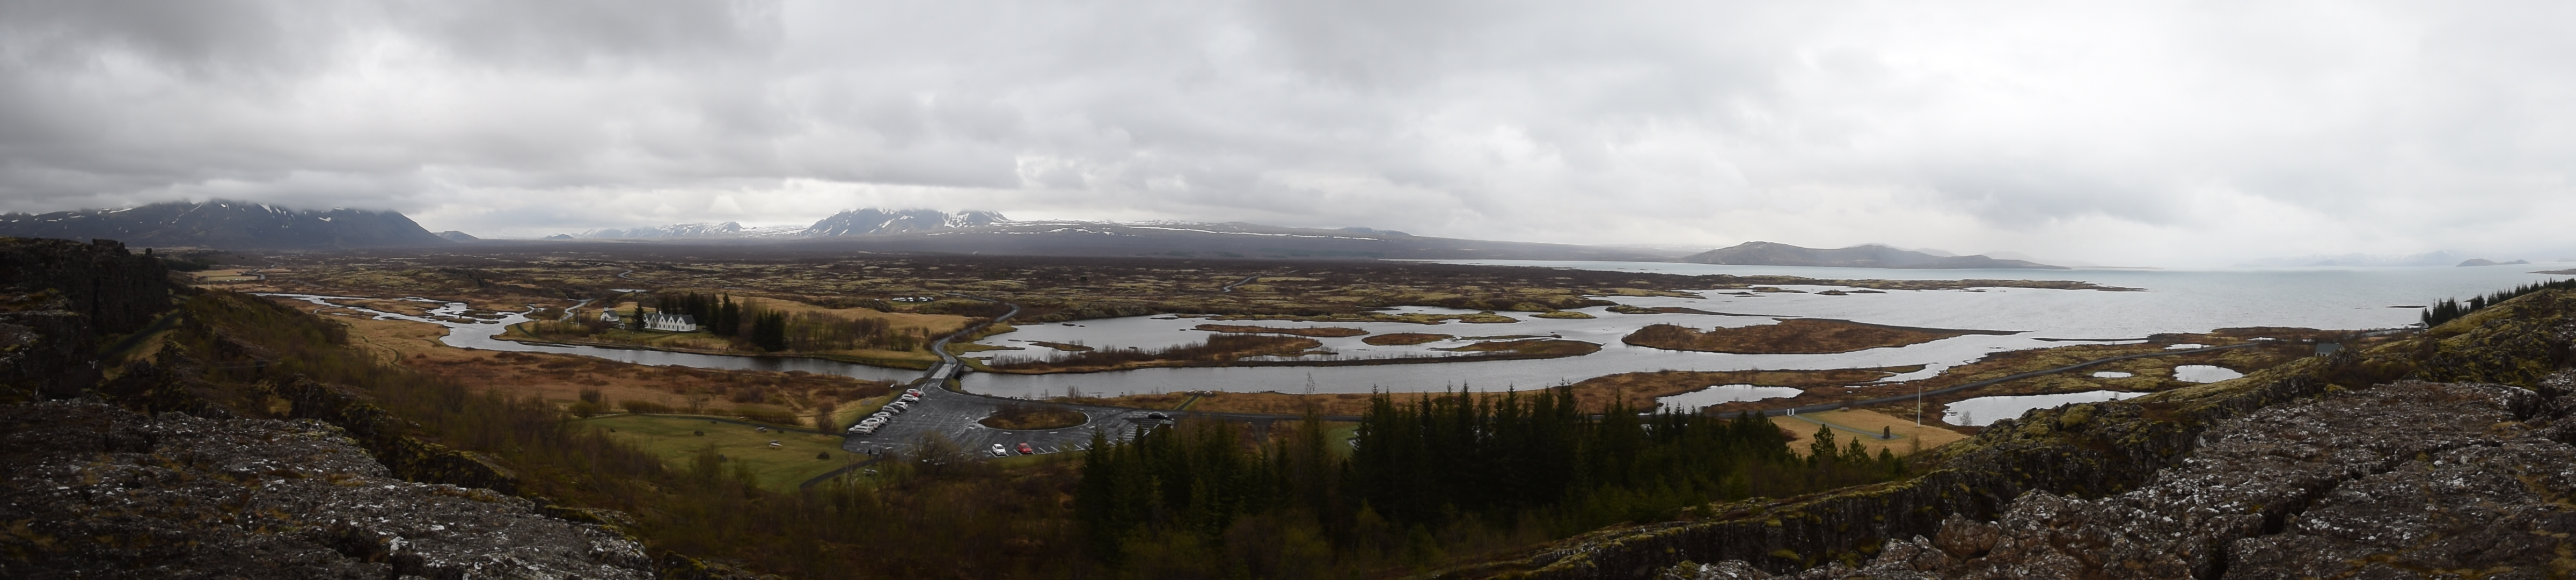 Panoramic view of Þingvellir National Park with mountains and water